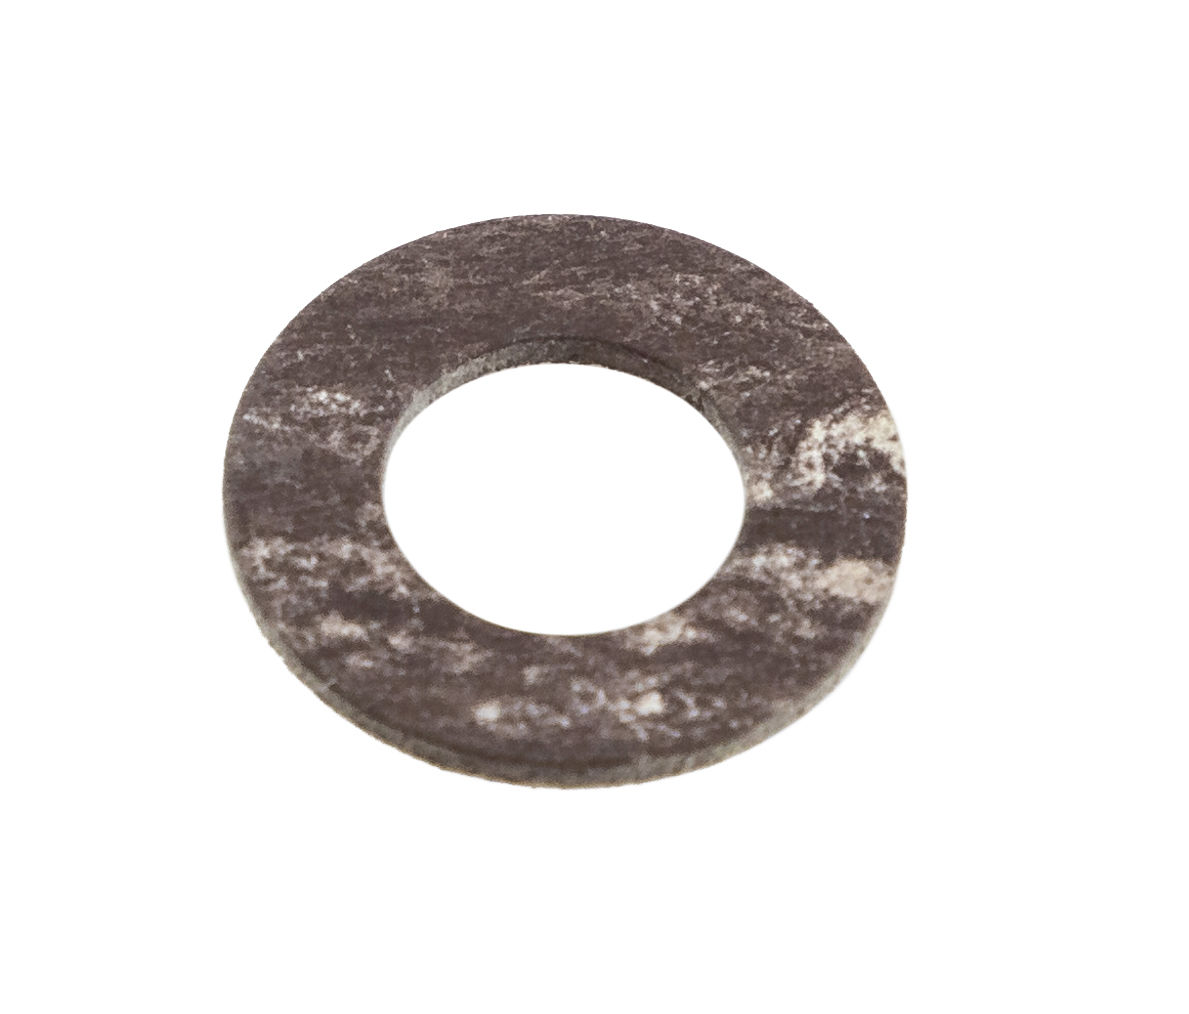 TOHATSU OUTBOARD ENGINE GEARBOX DRAIN PLUG WASHER SEAL